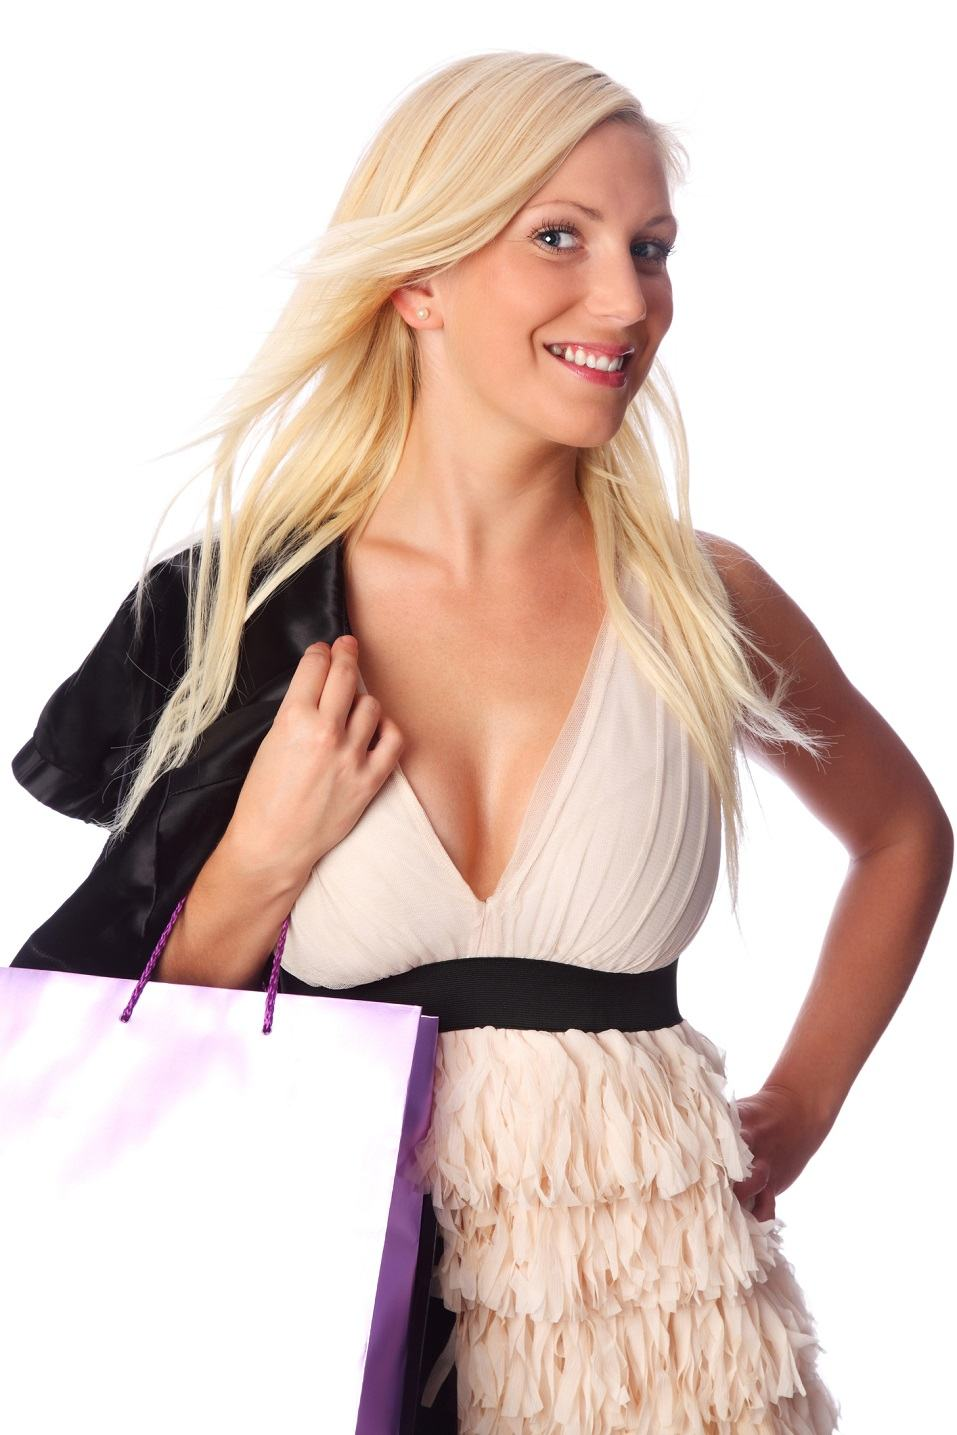 Young blonde woman wearing a dress